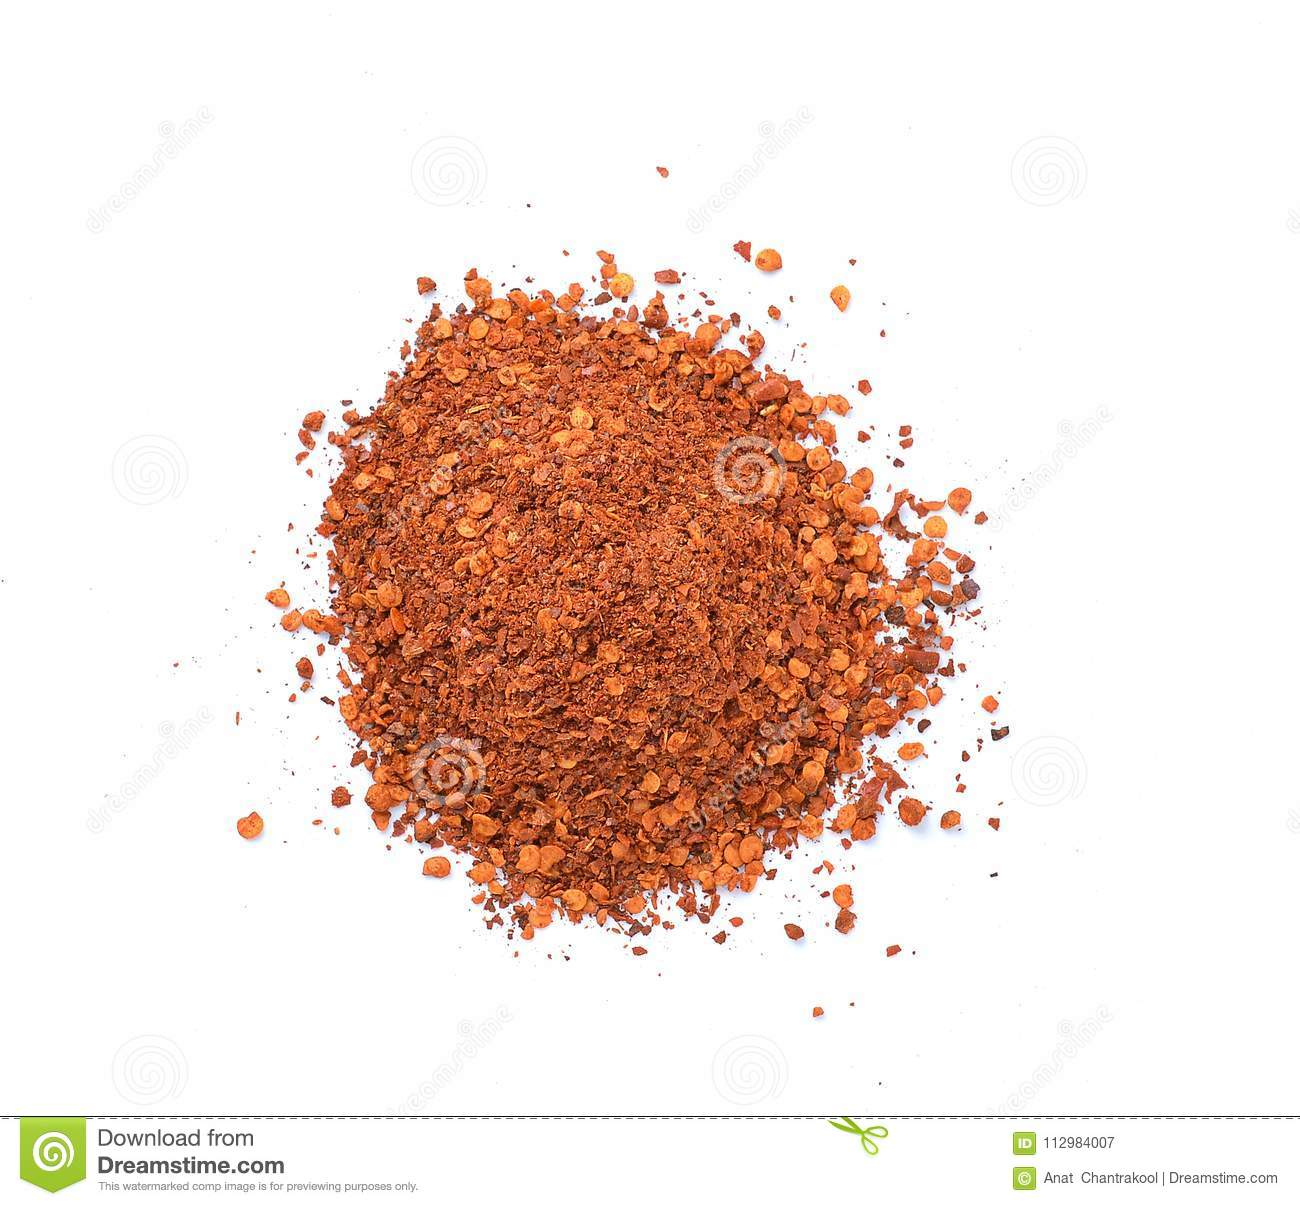 Cayenne pepper isolated on a white background